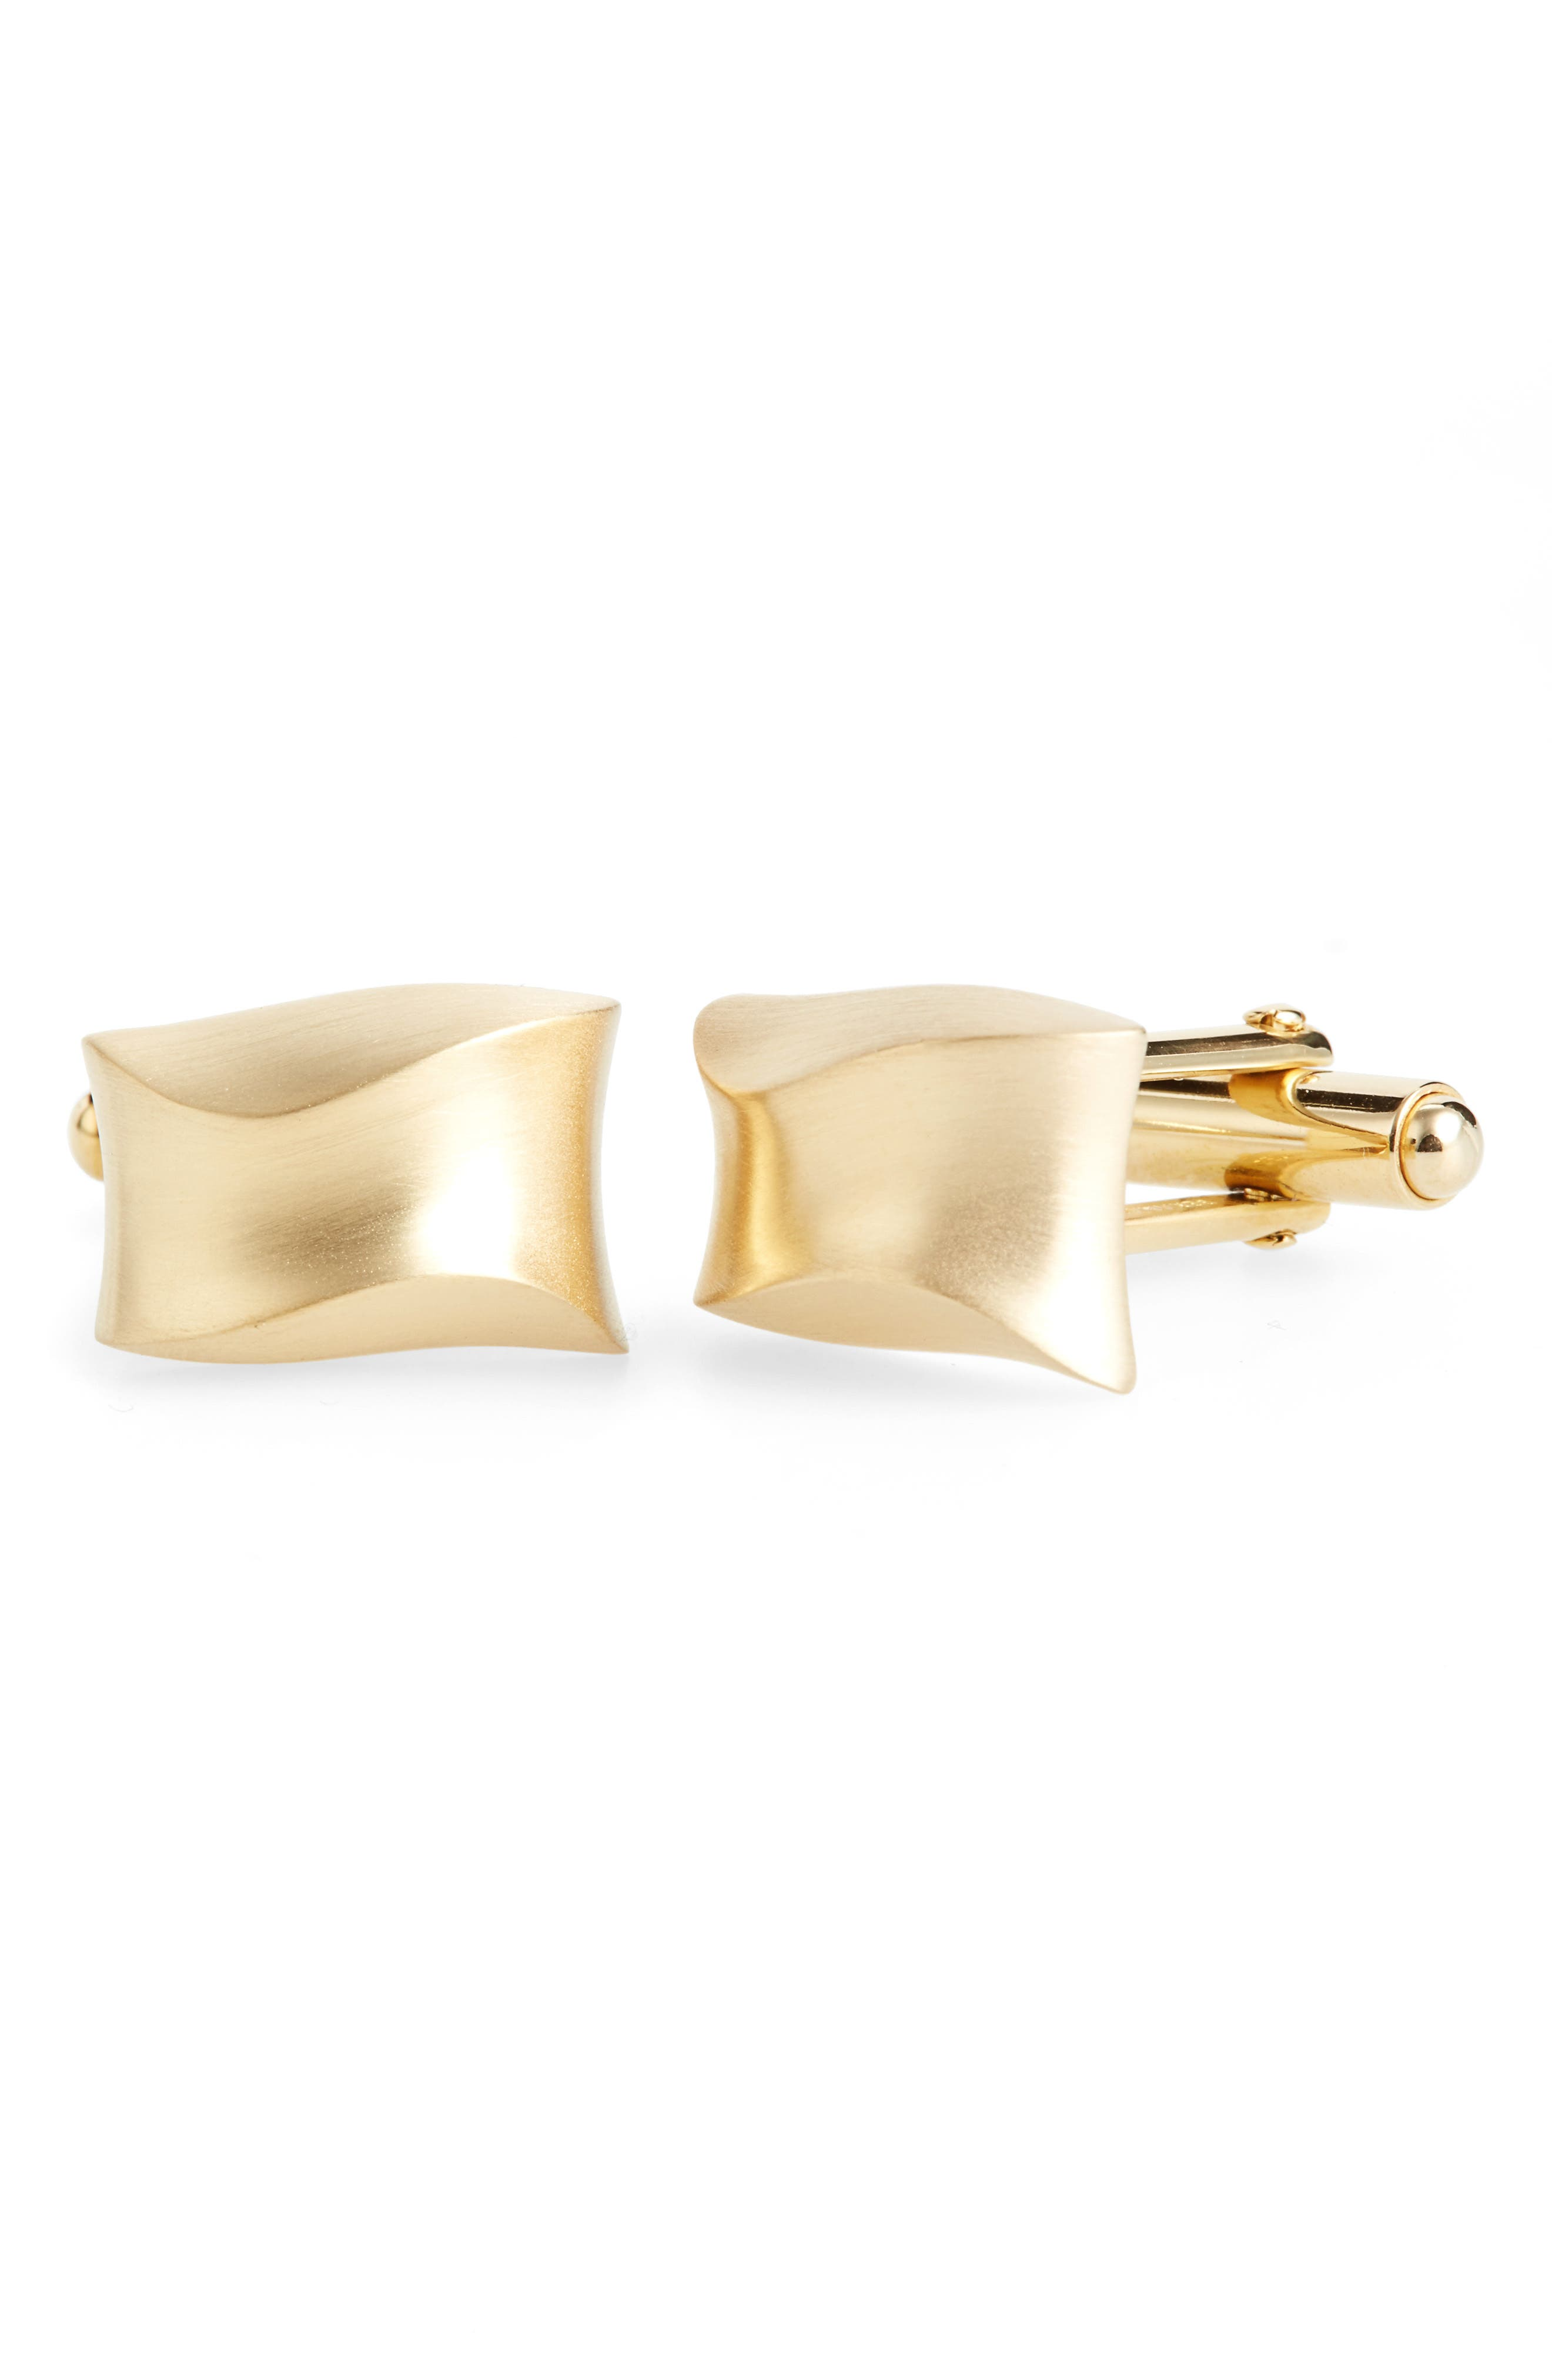 Lanvin Curved Cuff Links